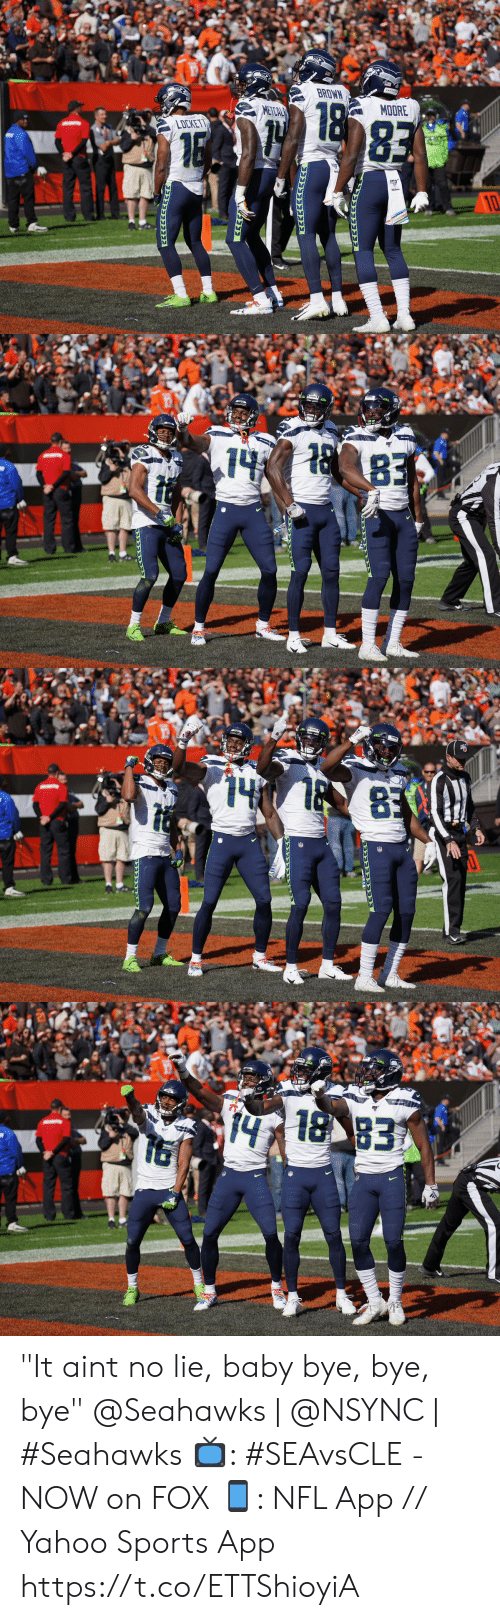 "Memes, Nfl, and Sports: BROWN  MOORE  METCAL  83  LDCKET  16   83  74   14 883   4 18 83 ""It aint no lie, baby bye, bye, bye""  @Seahawks 